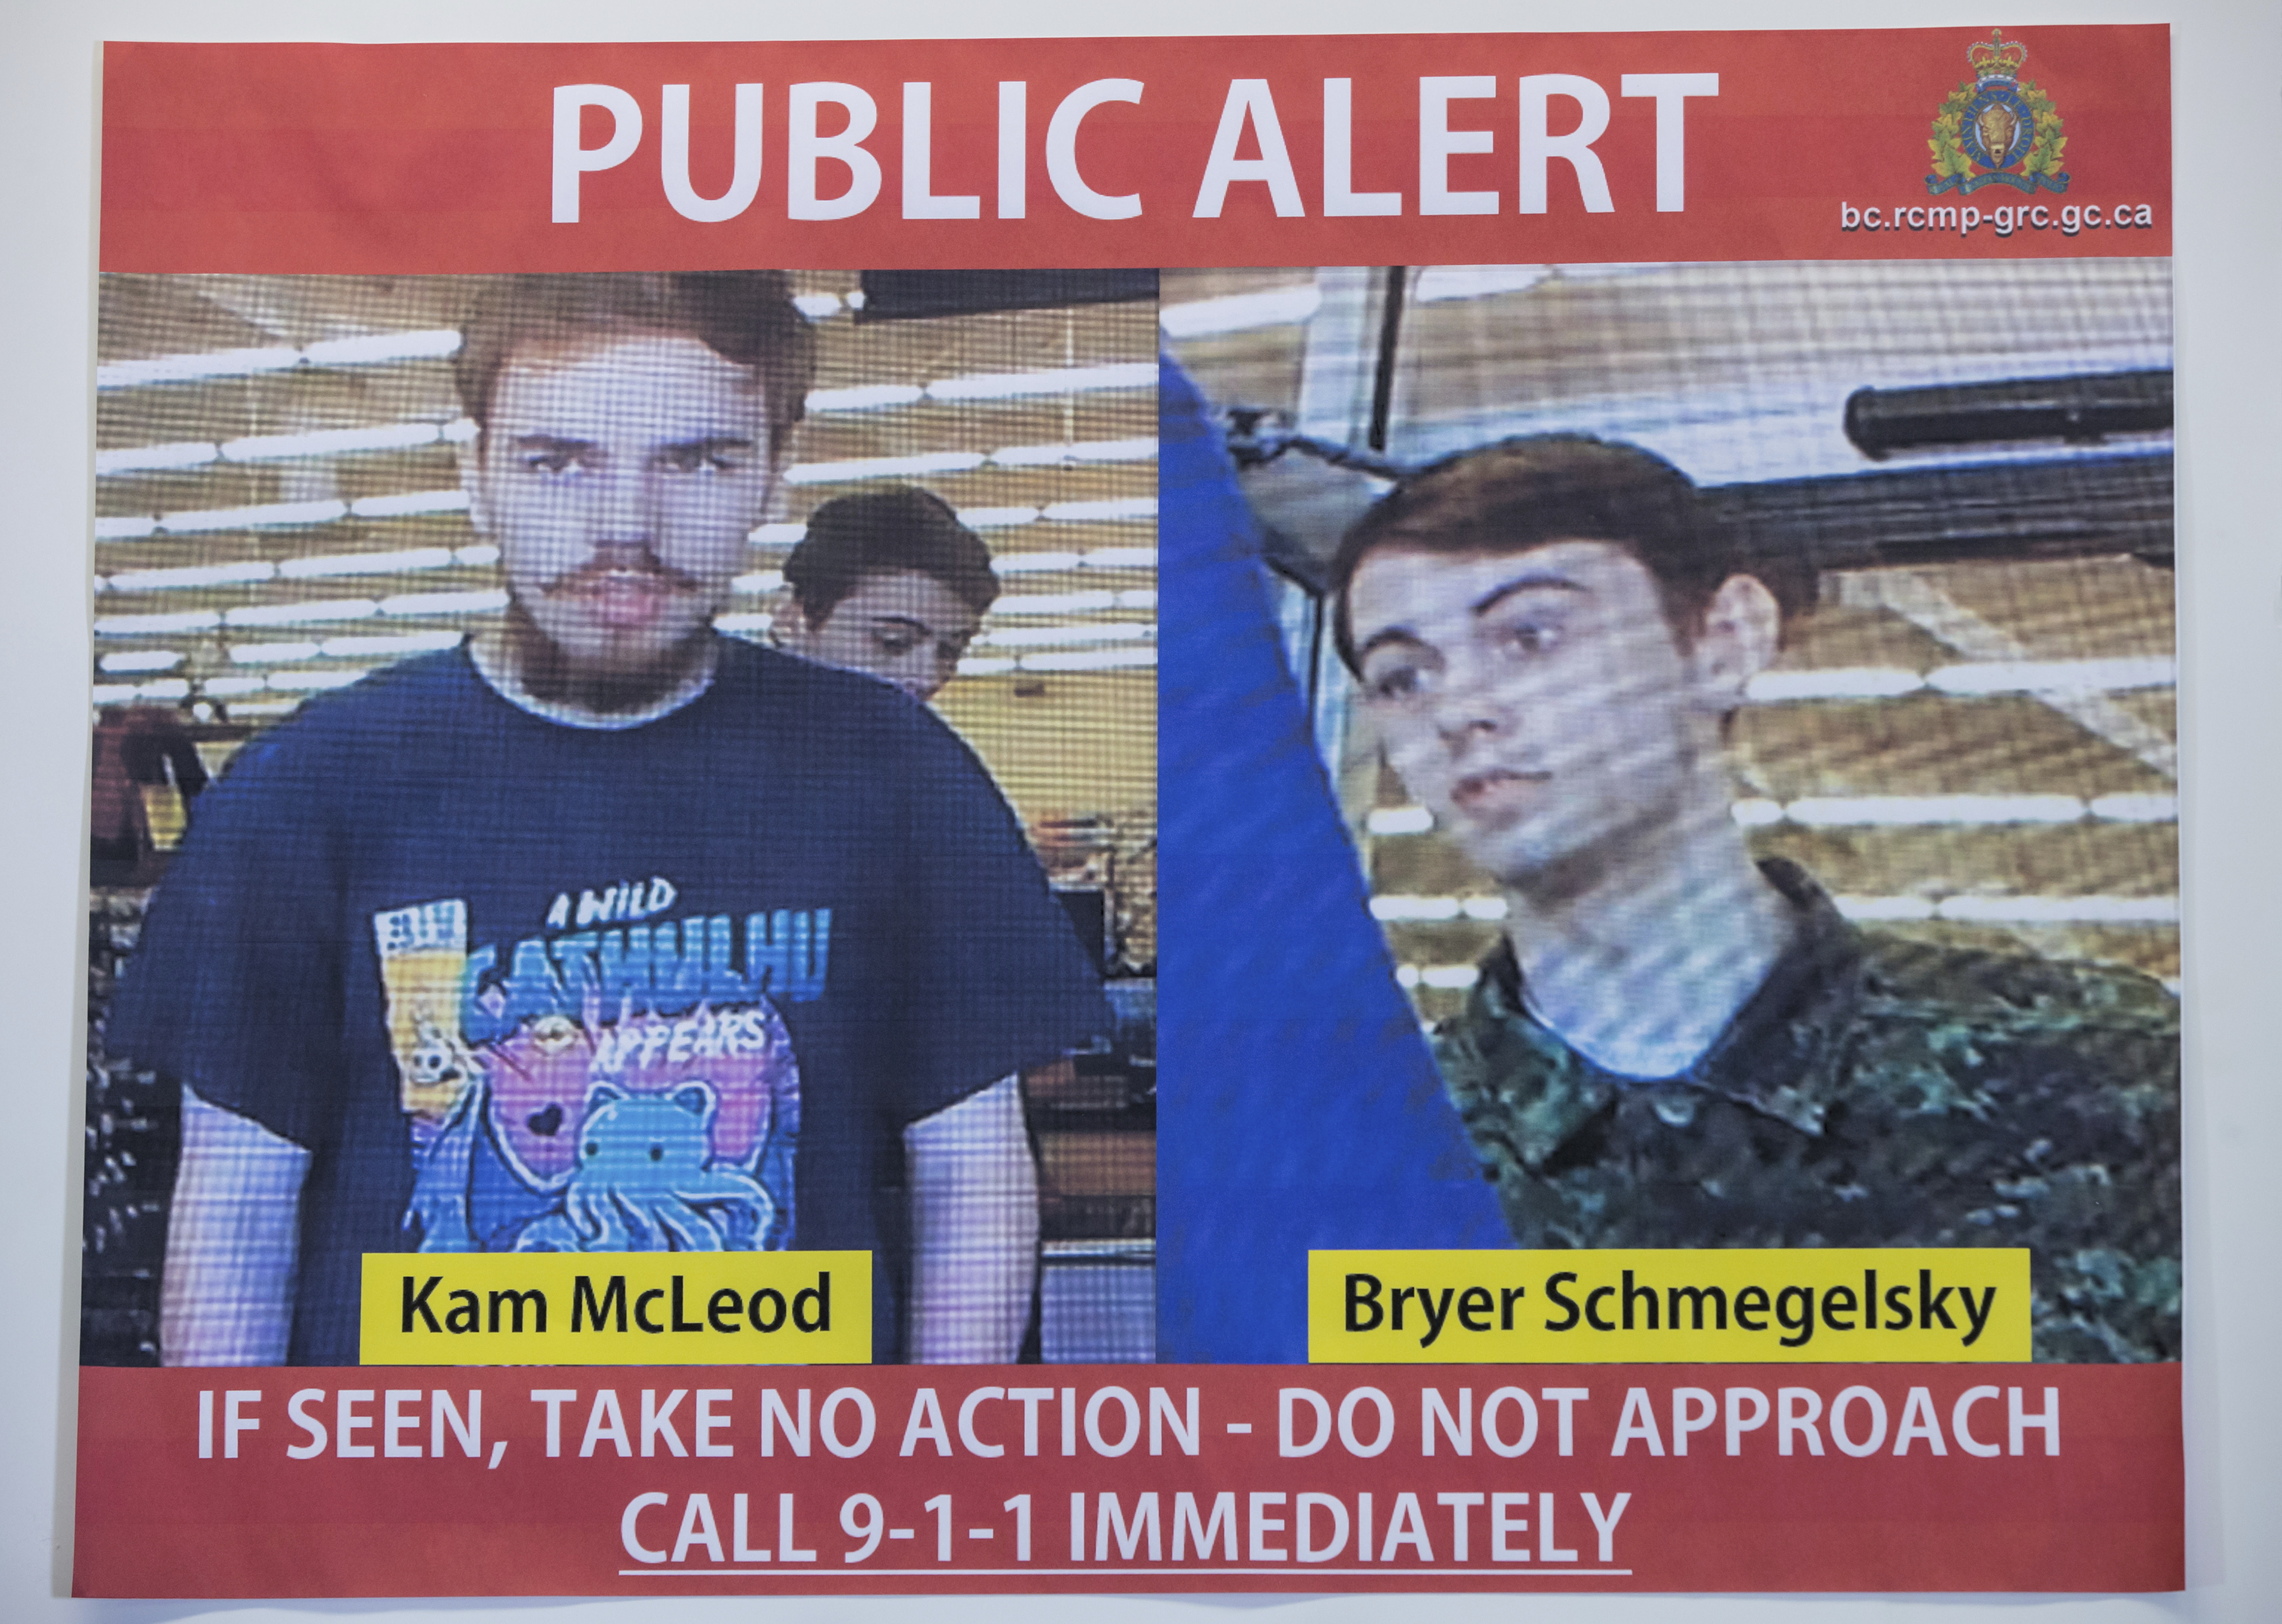 Father: nationwide Canada manhunt will end in sons death